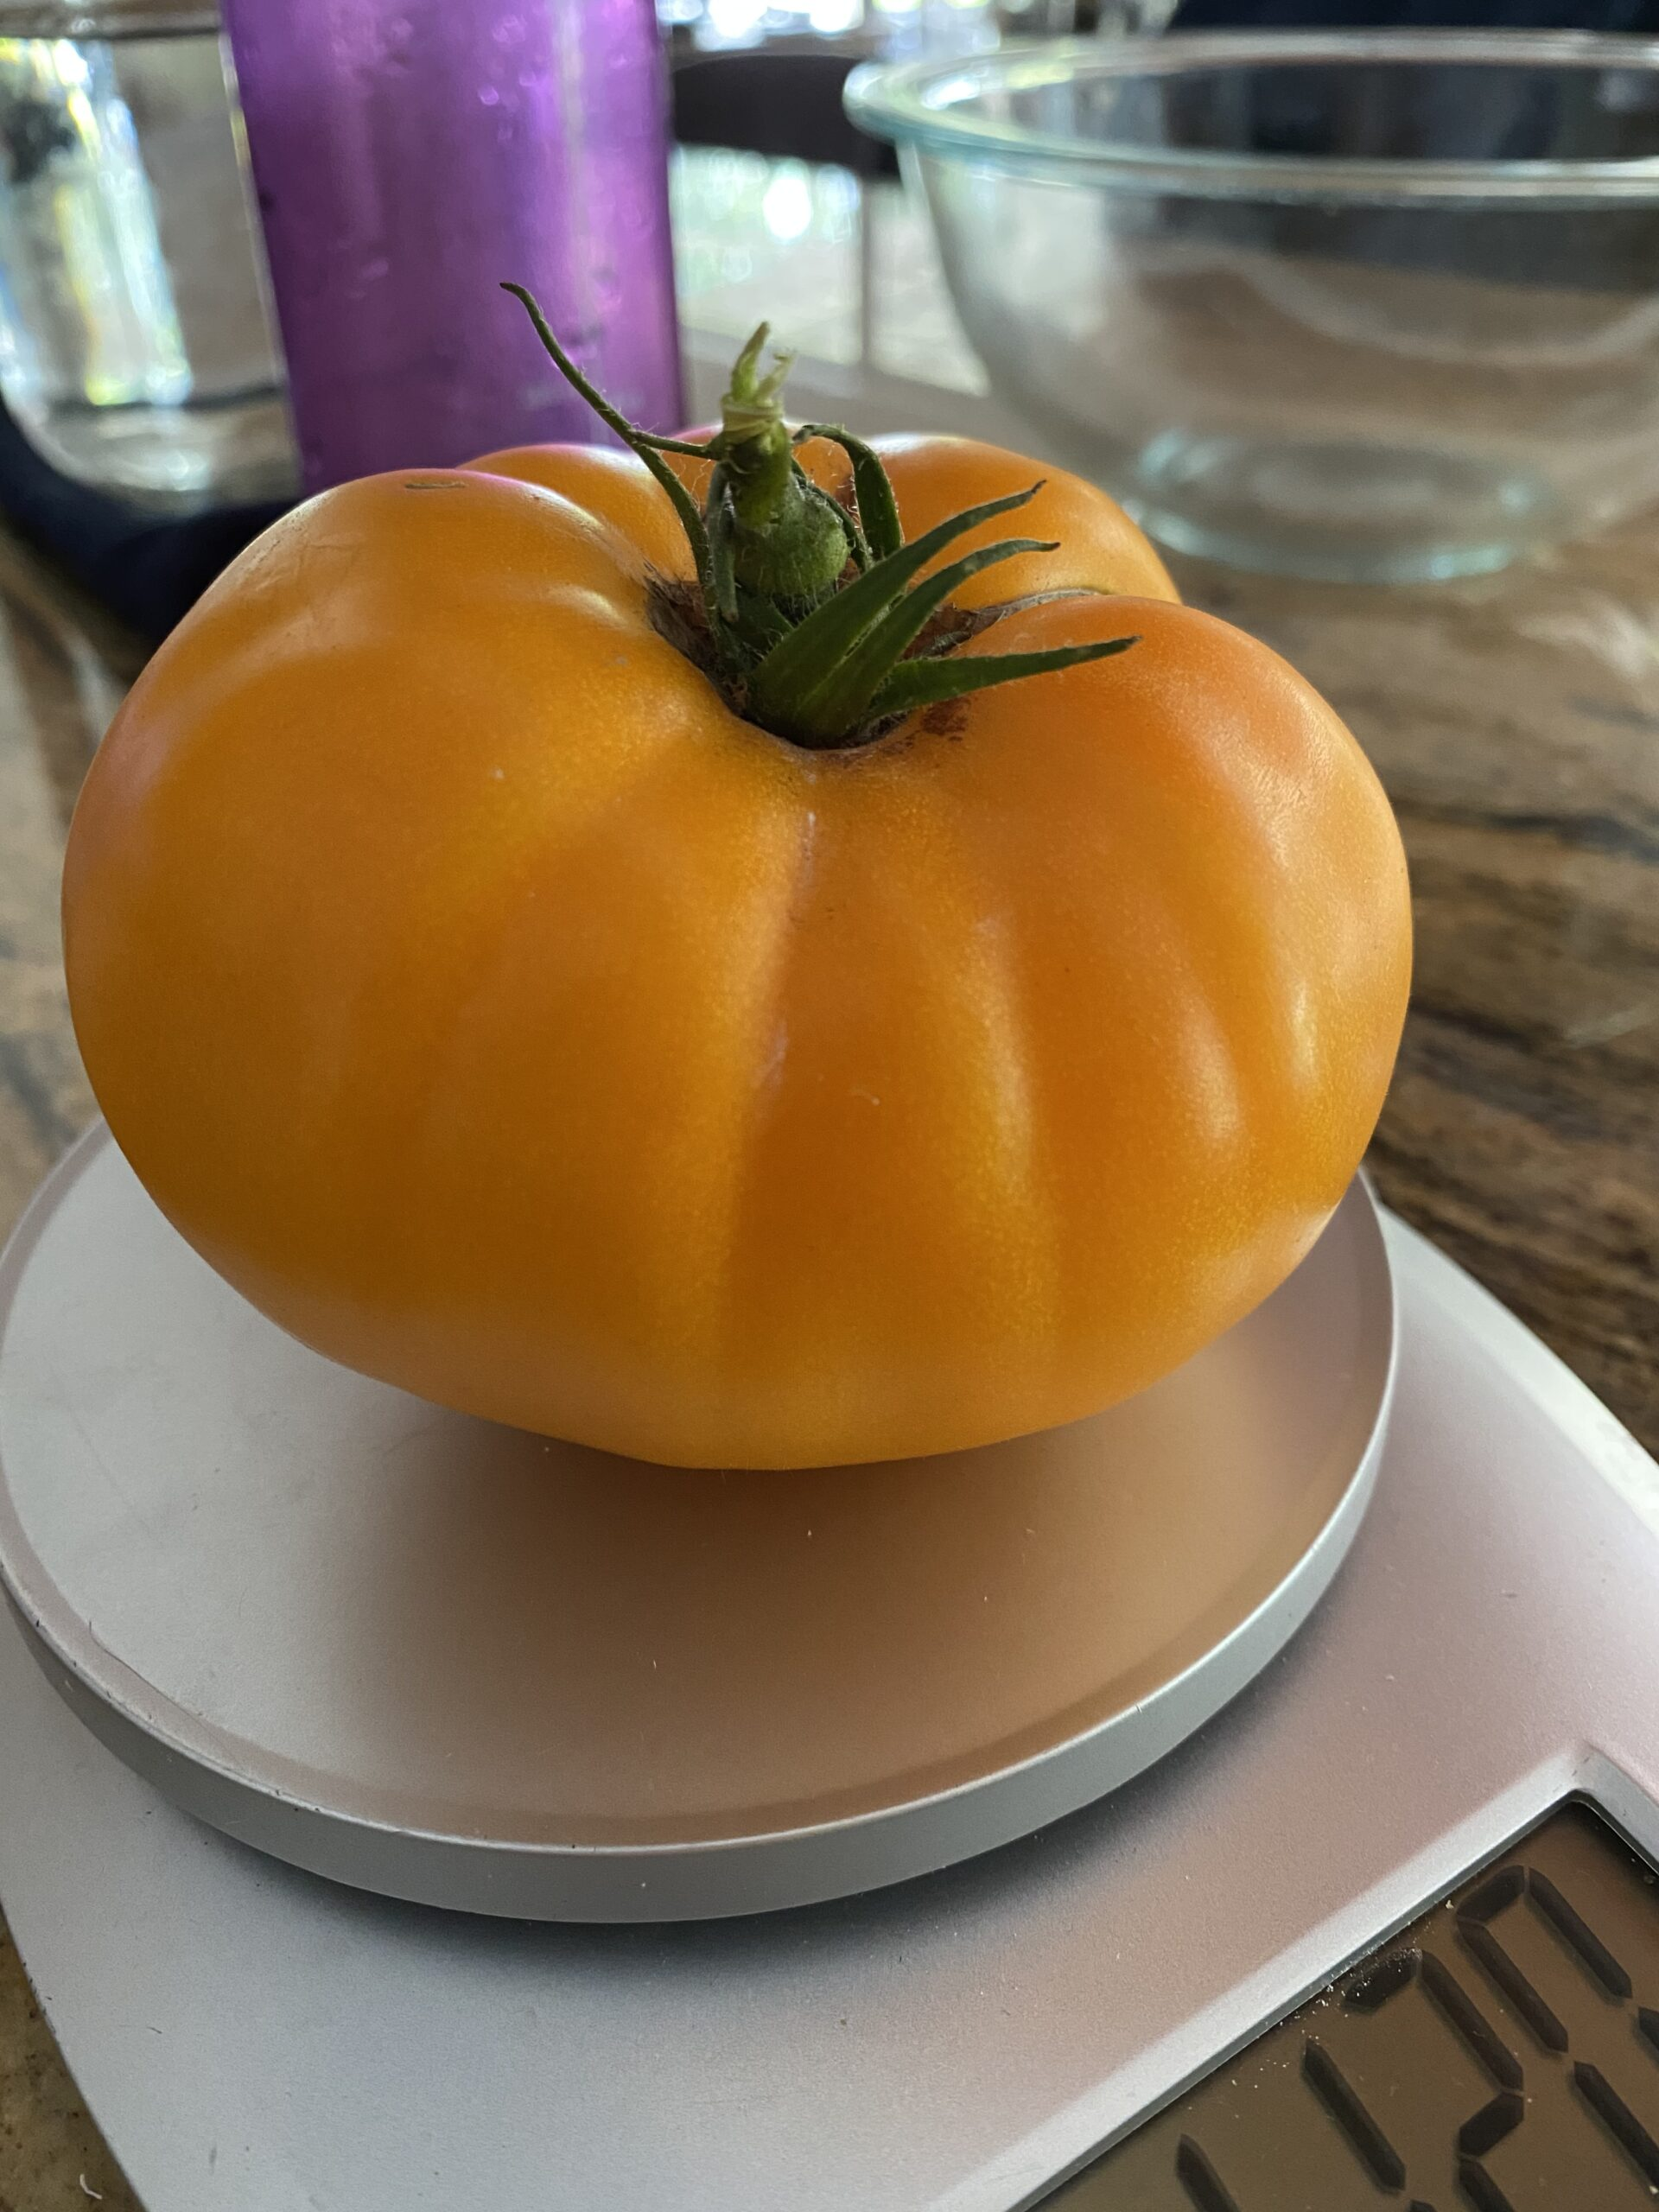 Large orange beefstead tomato on a kitchen scale